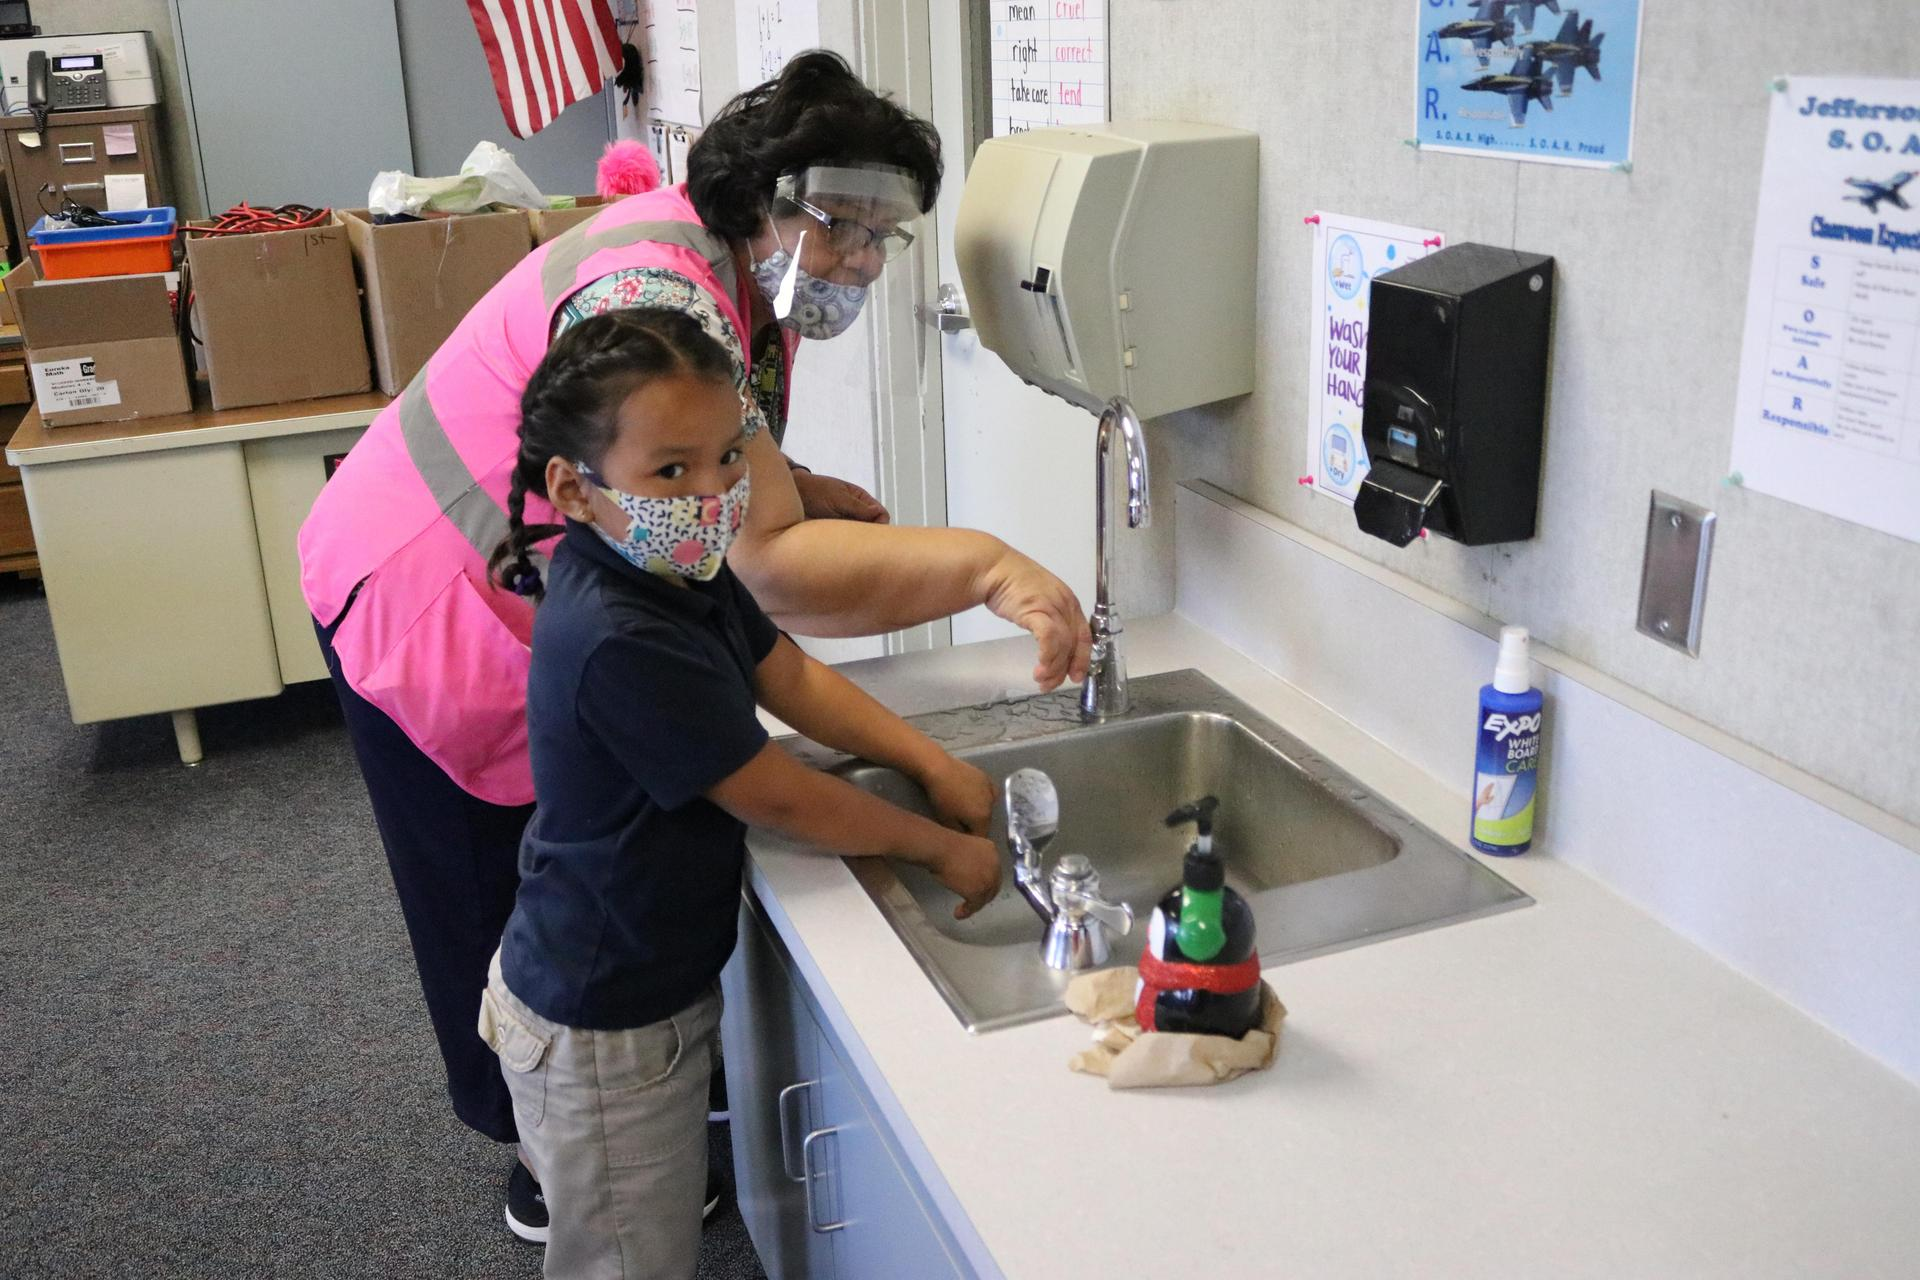 Elementary student washing hands